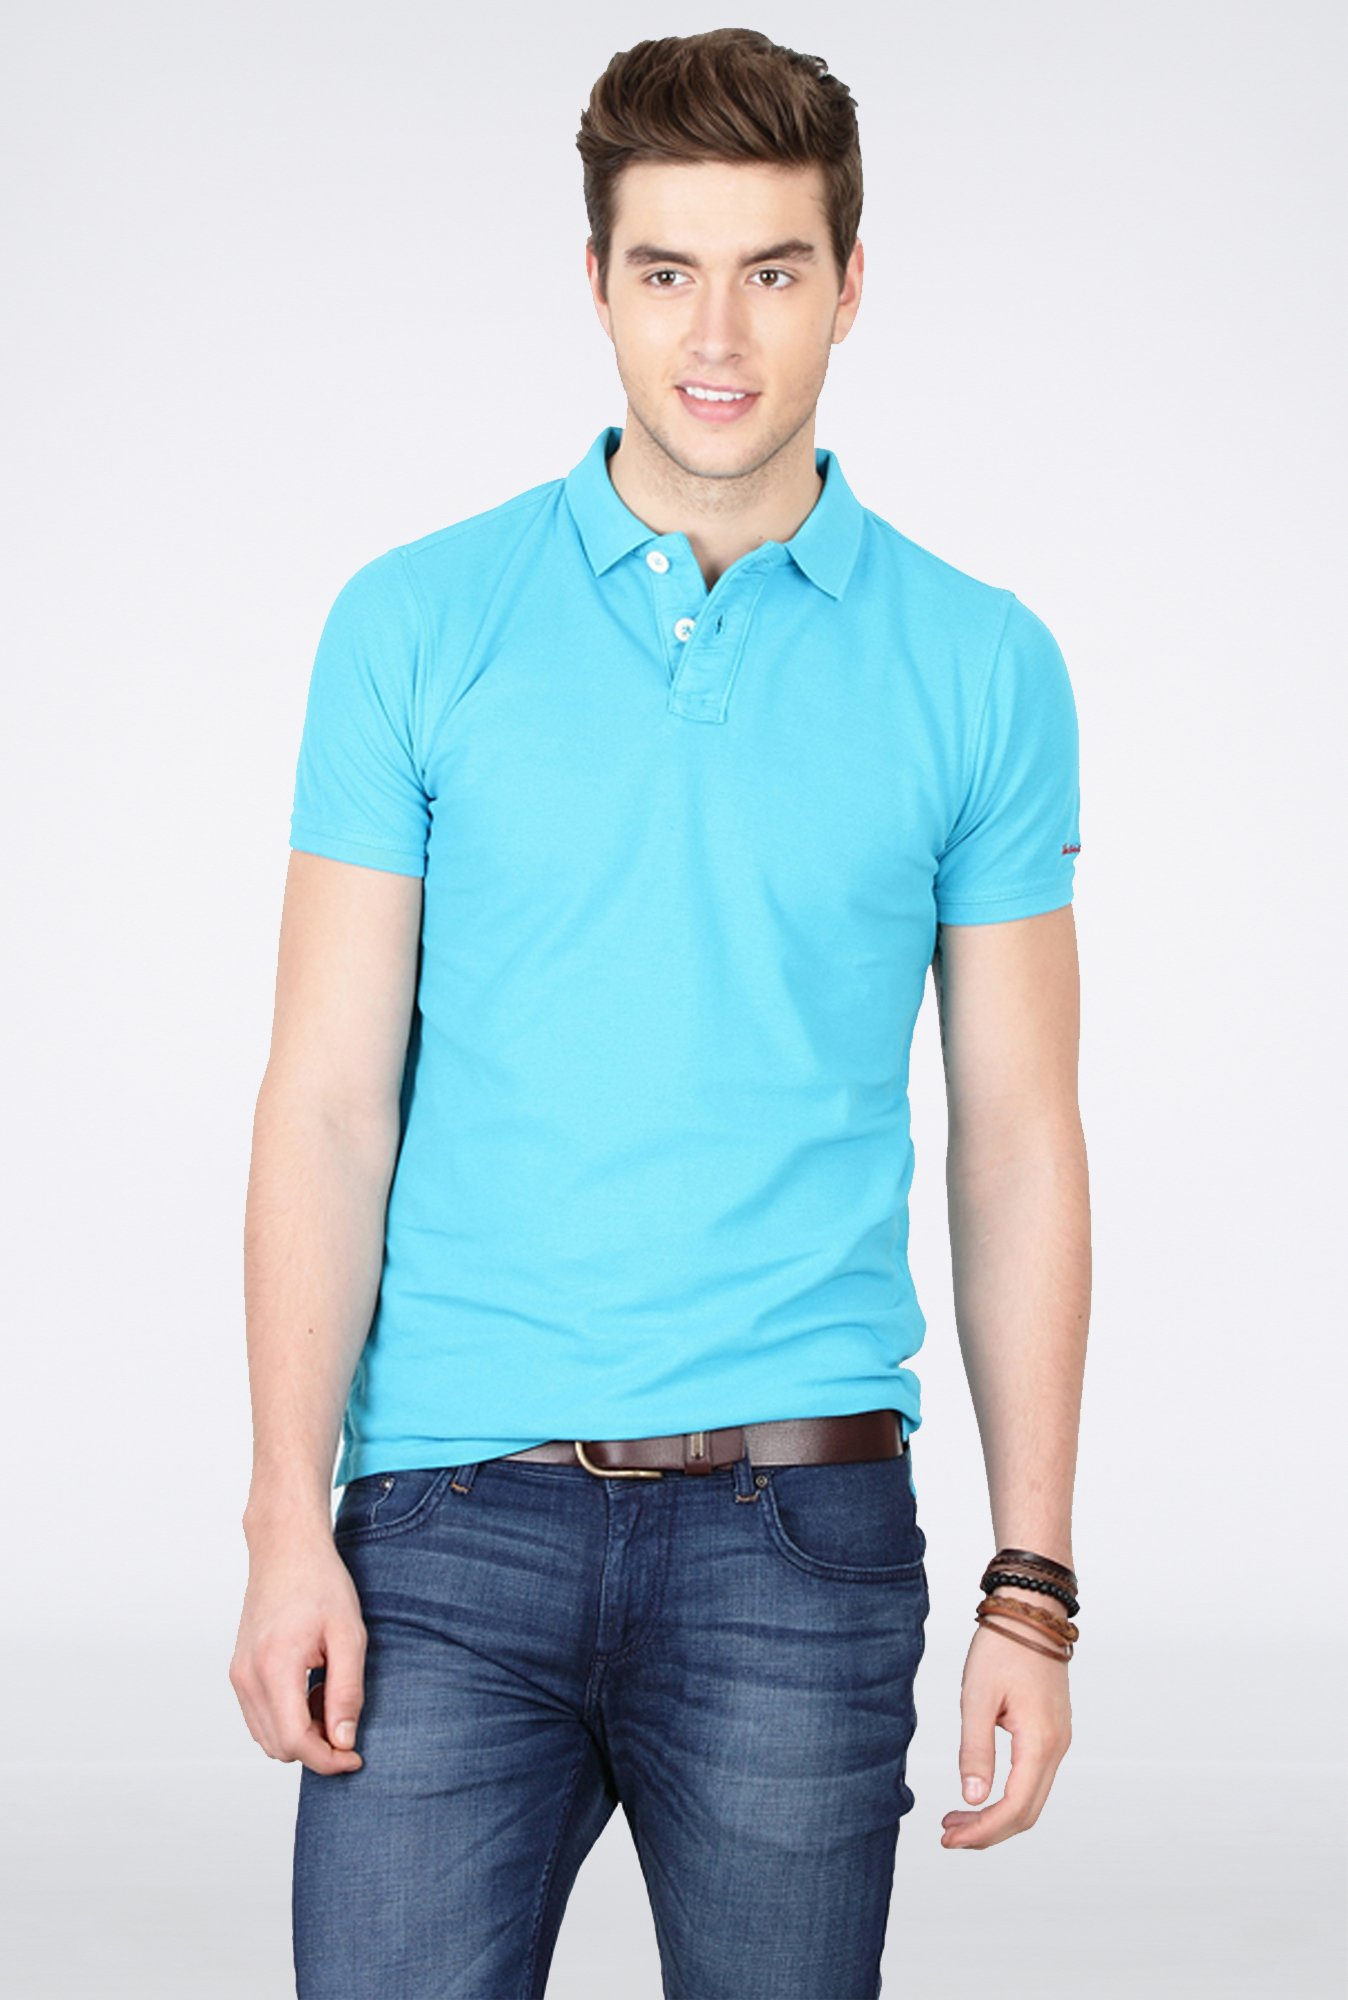 Basics Aqua Polo T Shirt